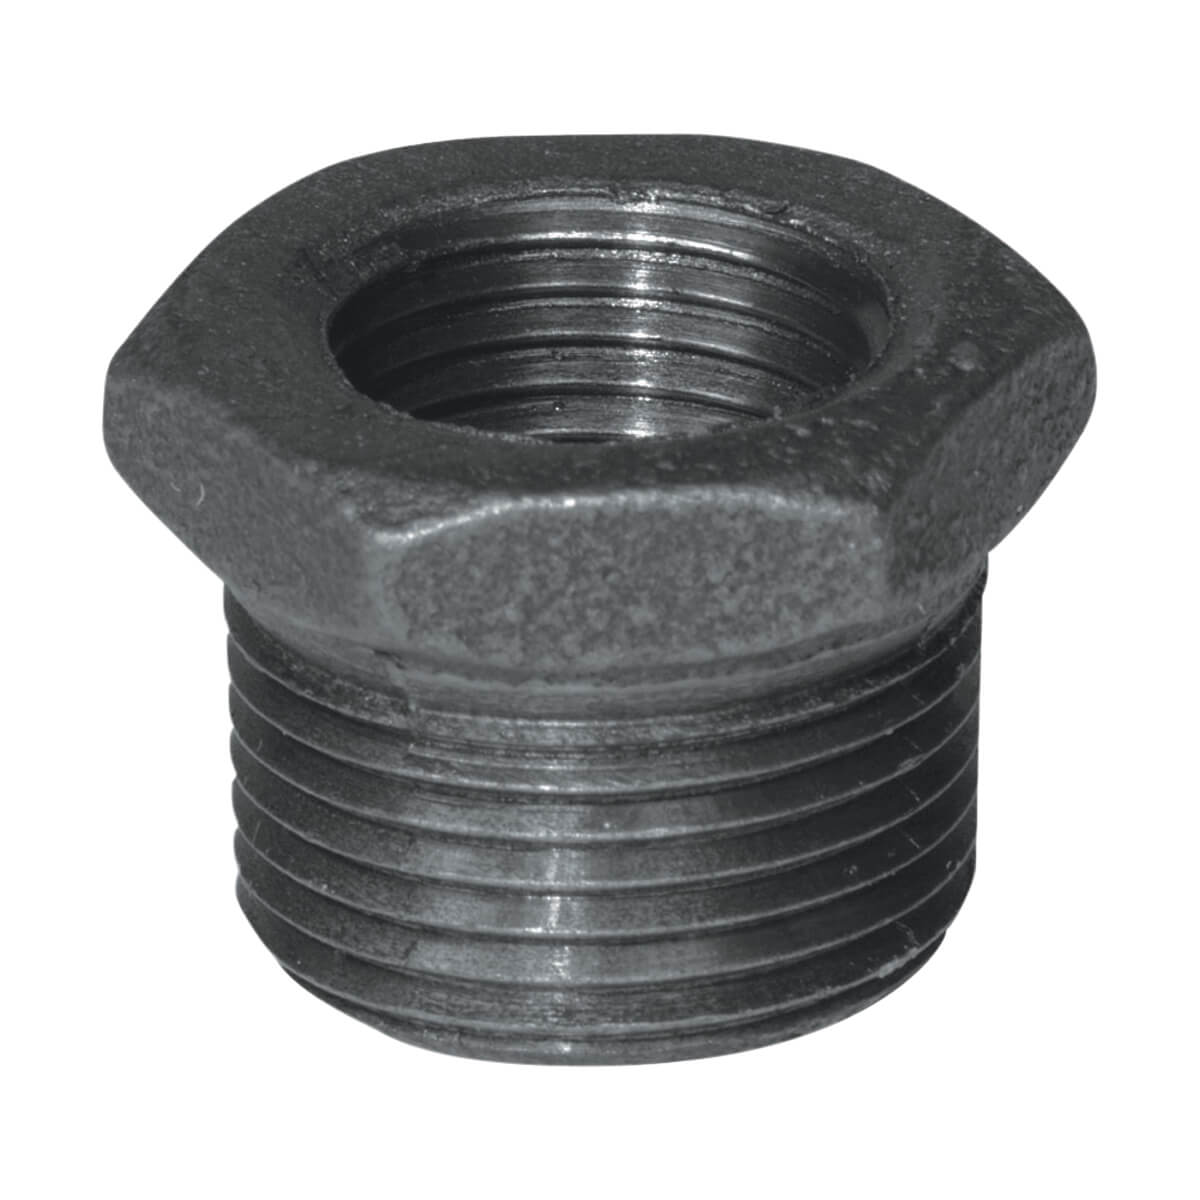 Fitting Black Iron Hex Bushing - 1-1/4-in x 1/2-in